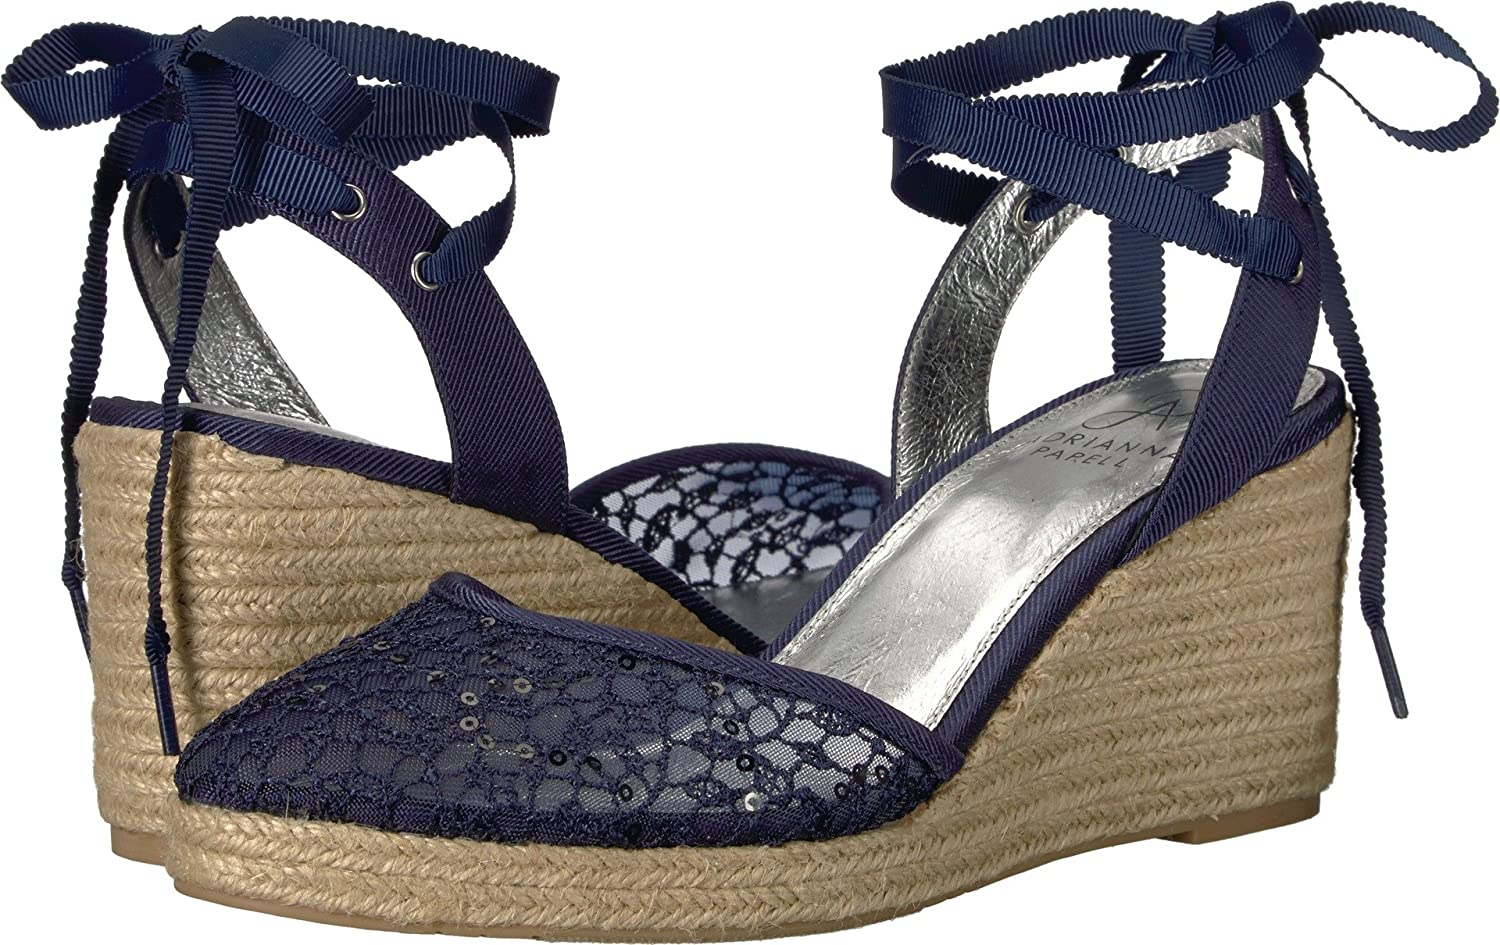 Adrianna Papell Women's Pamela Navy Martinique Lace 9.5 M US